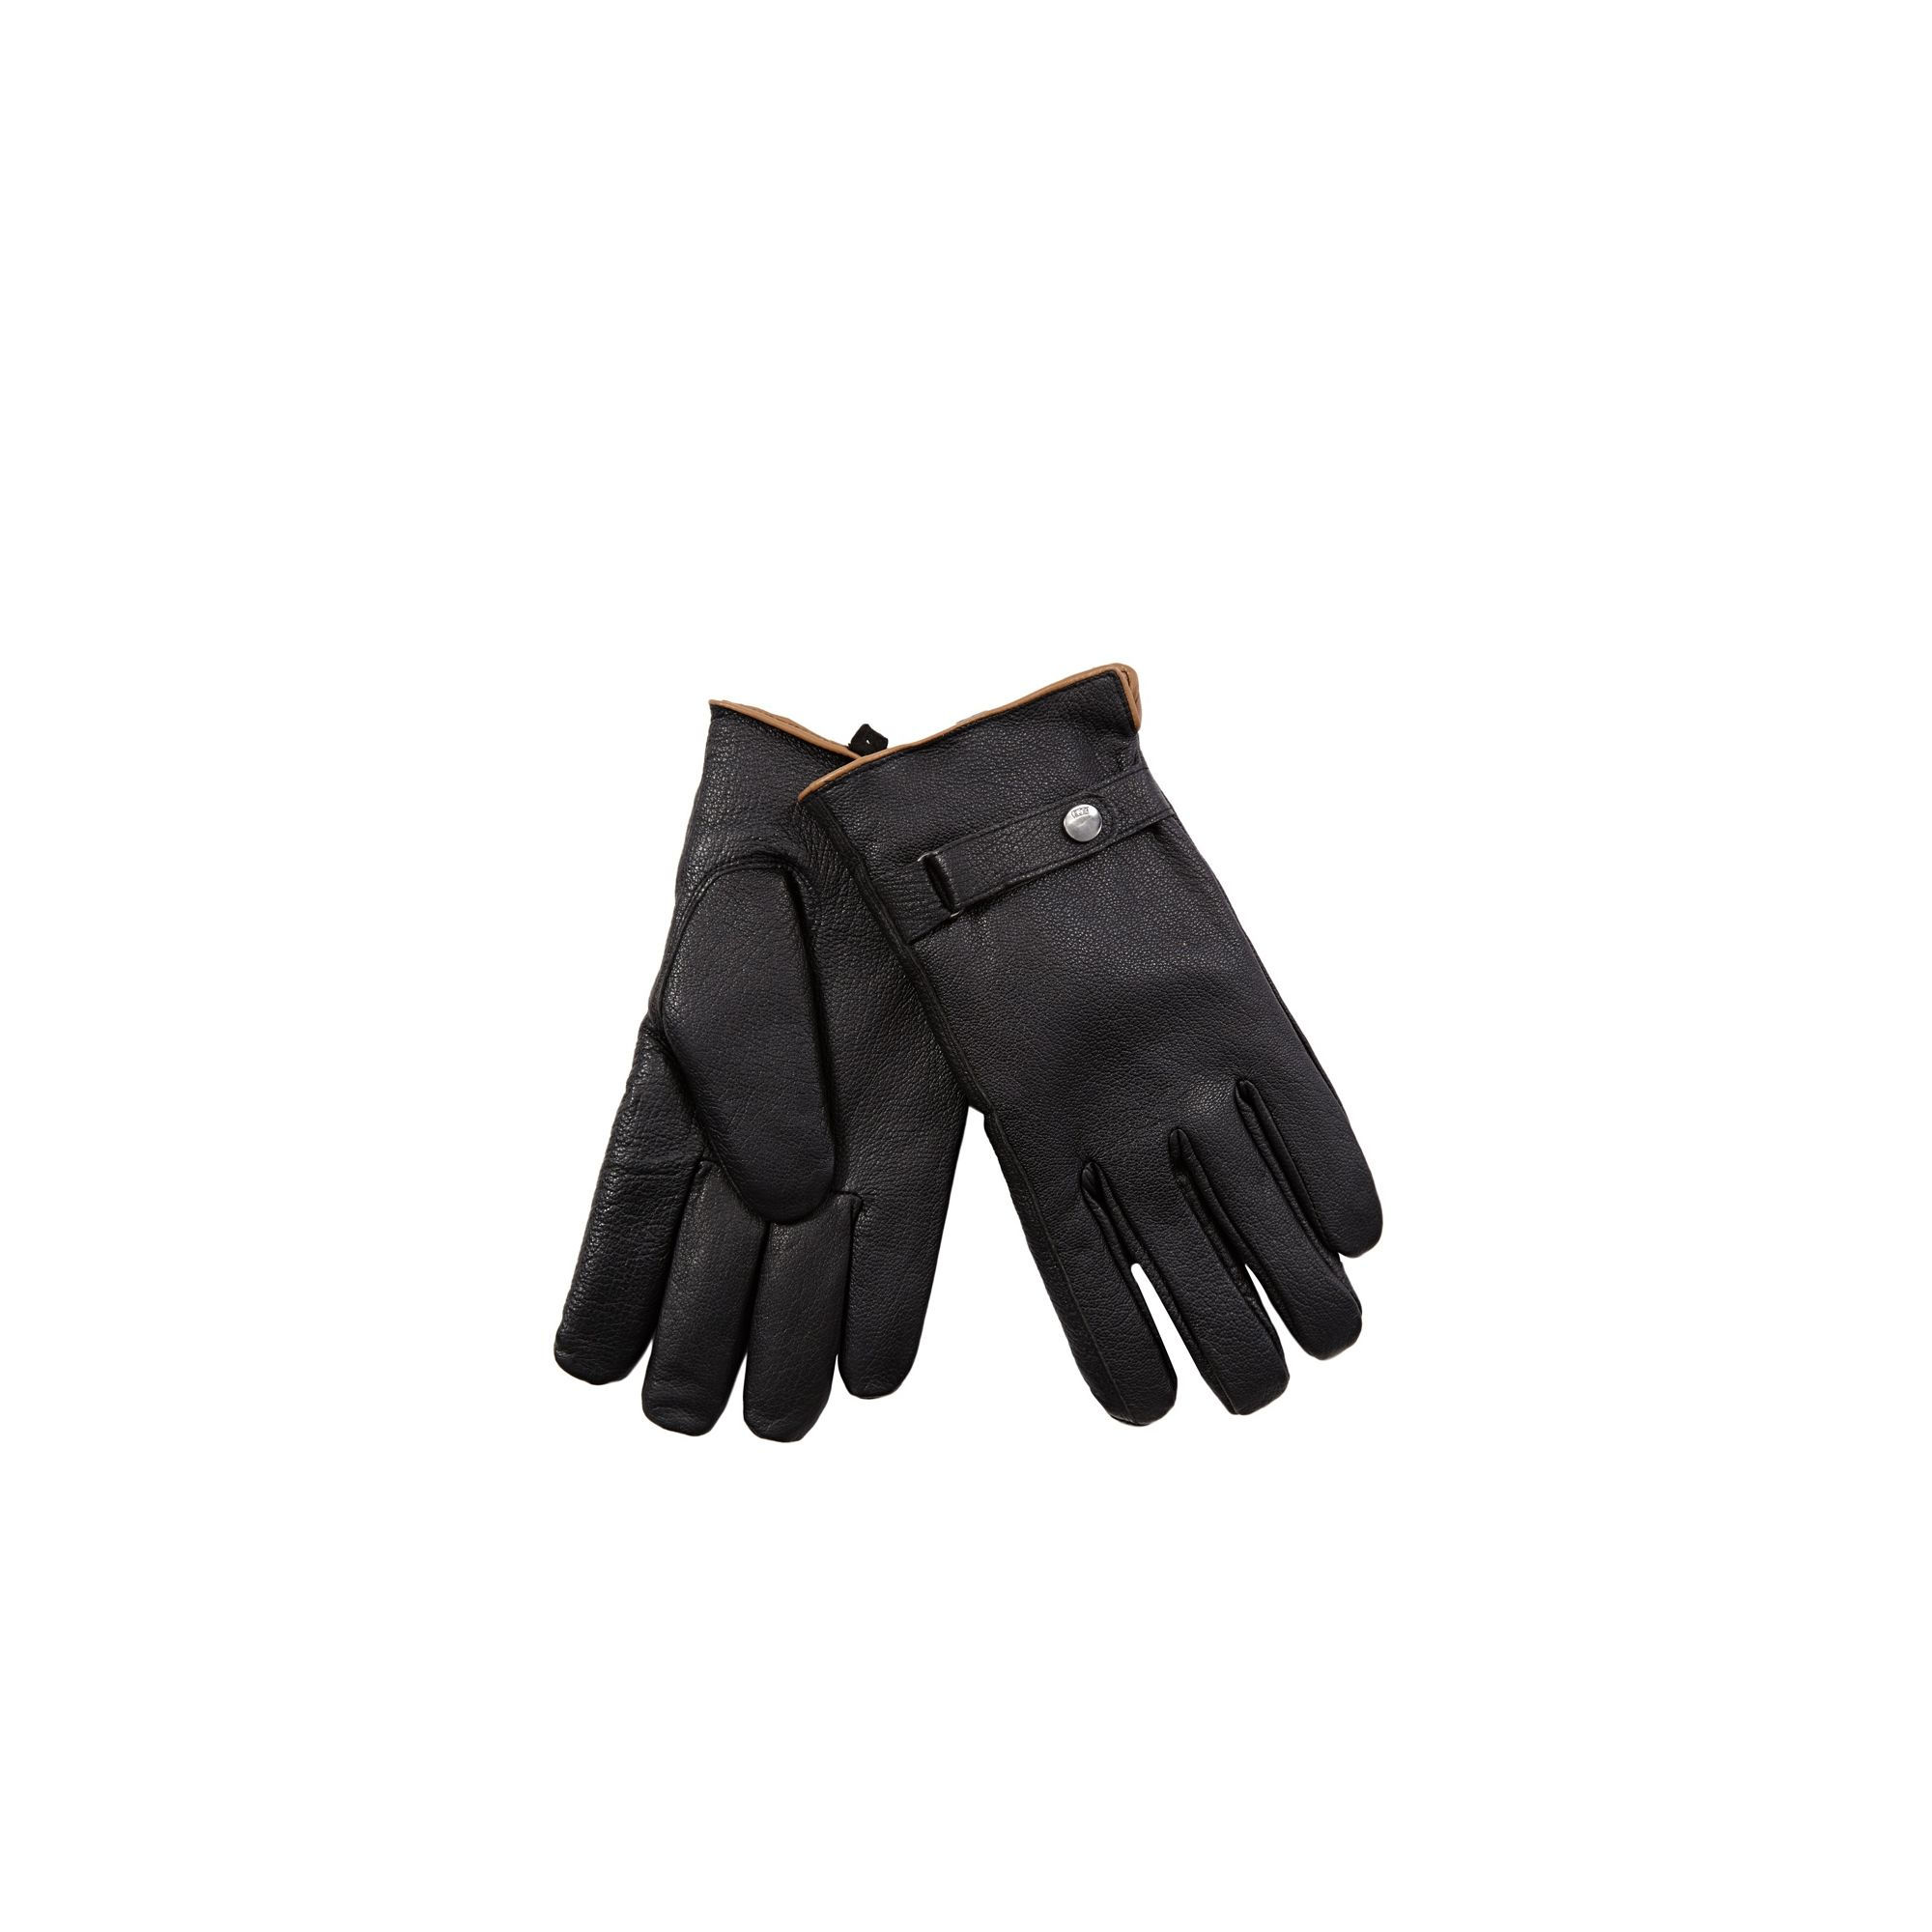 Mens Black Leather Gloves Debenhams - Free delivery on orders over 40 when you add to basket at the top of the page